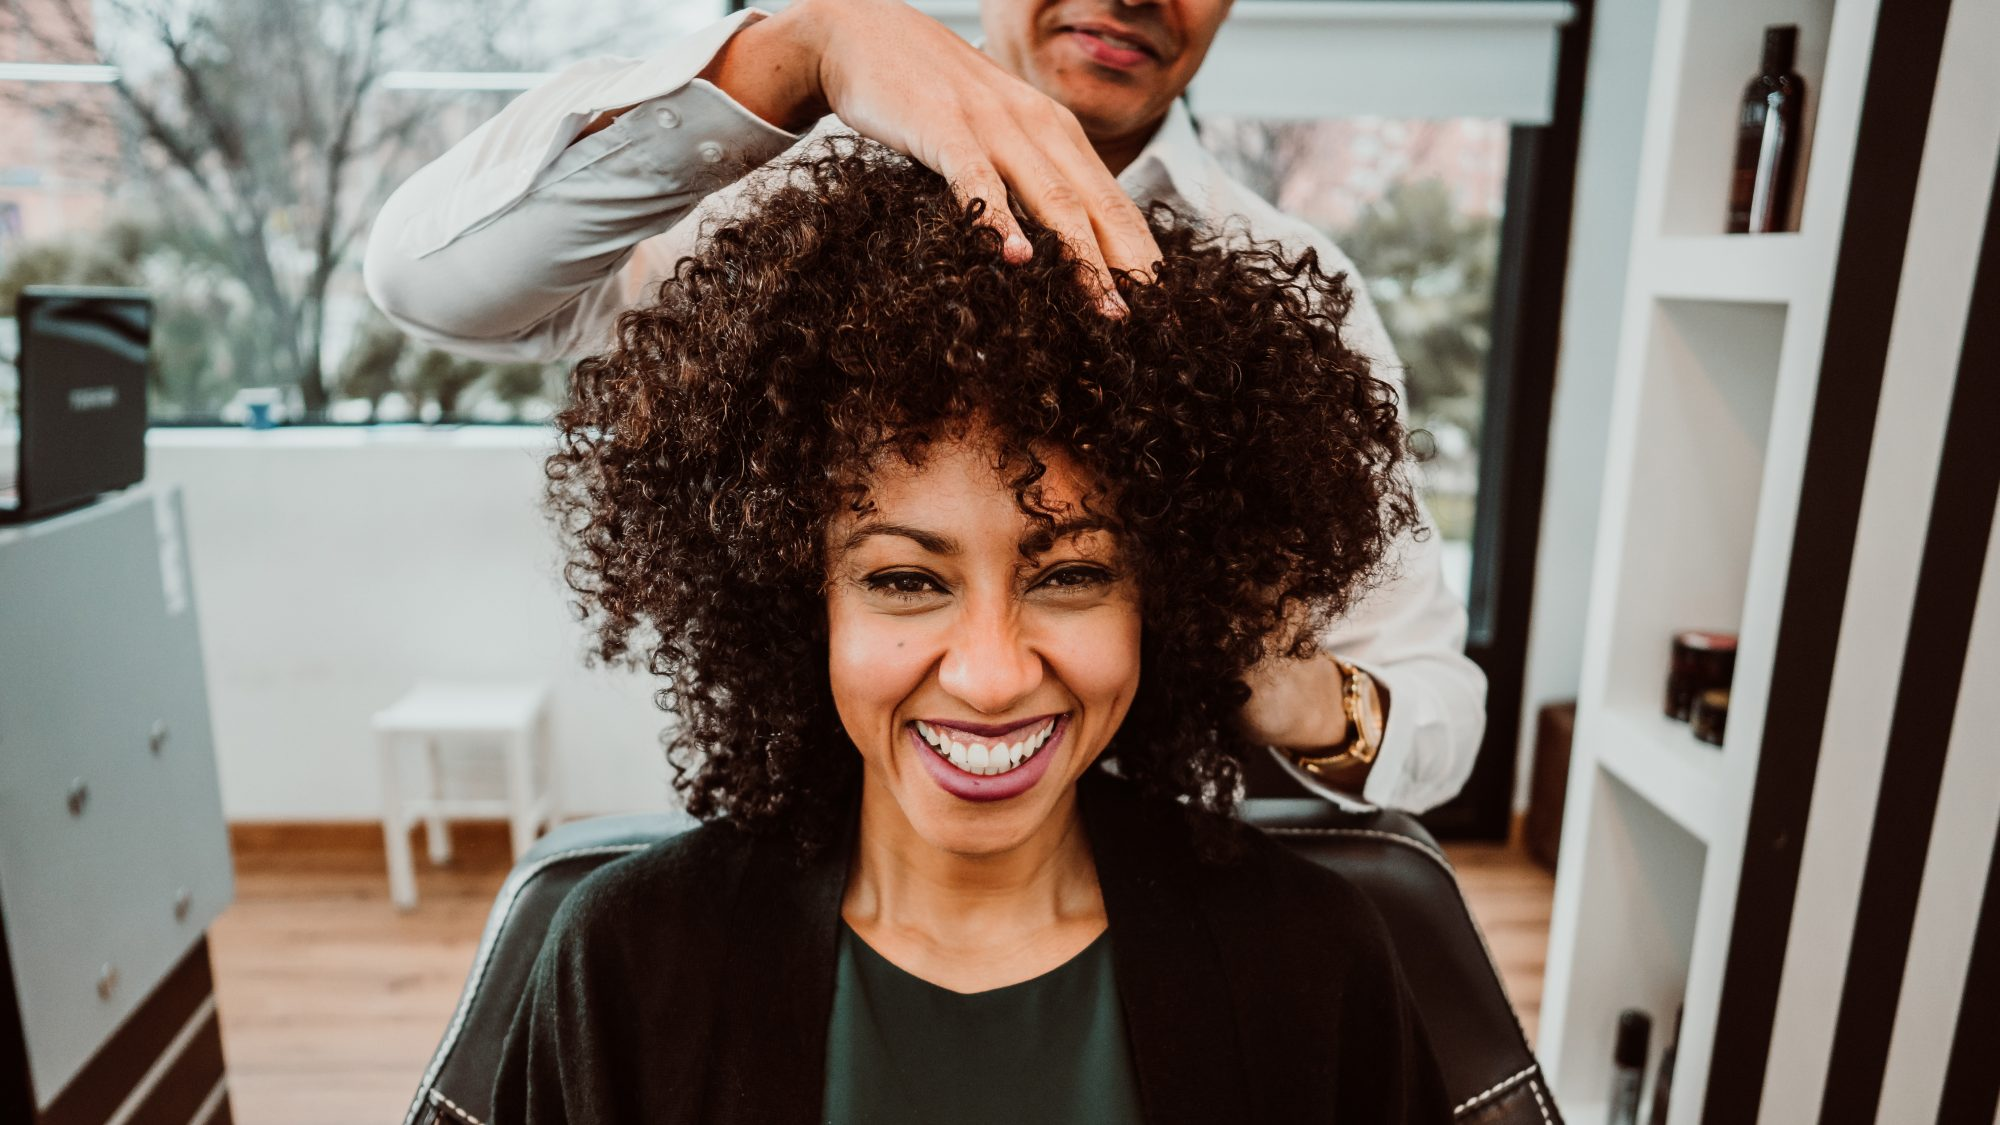 how-to-get-what-you-want-from-hairstylist: woman getting her hair cut